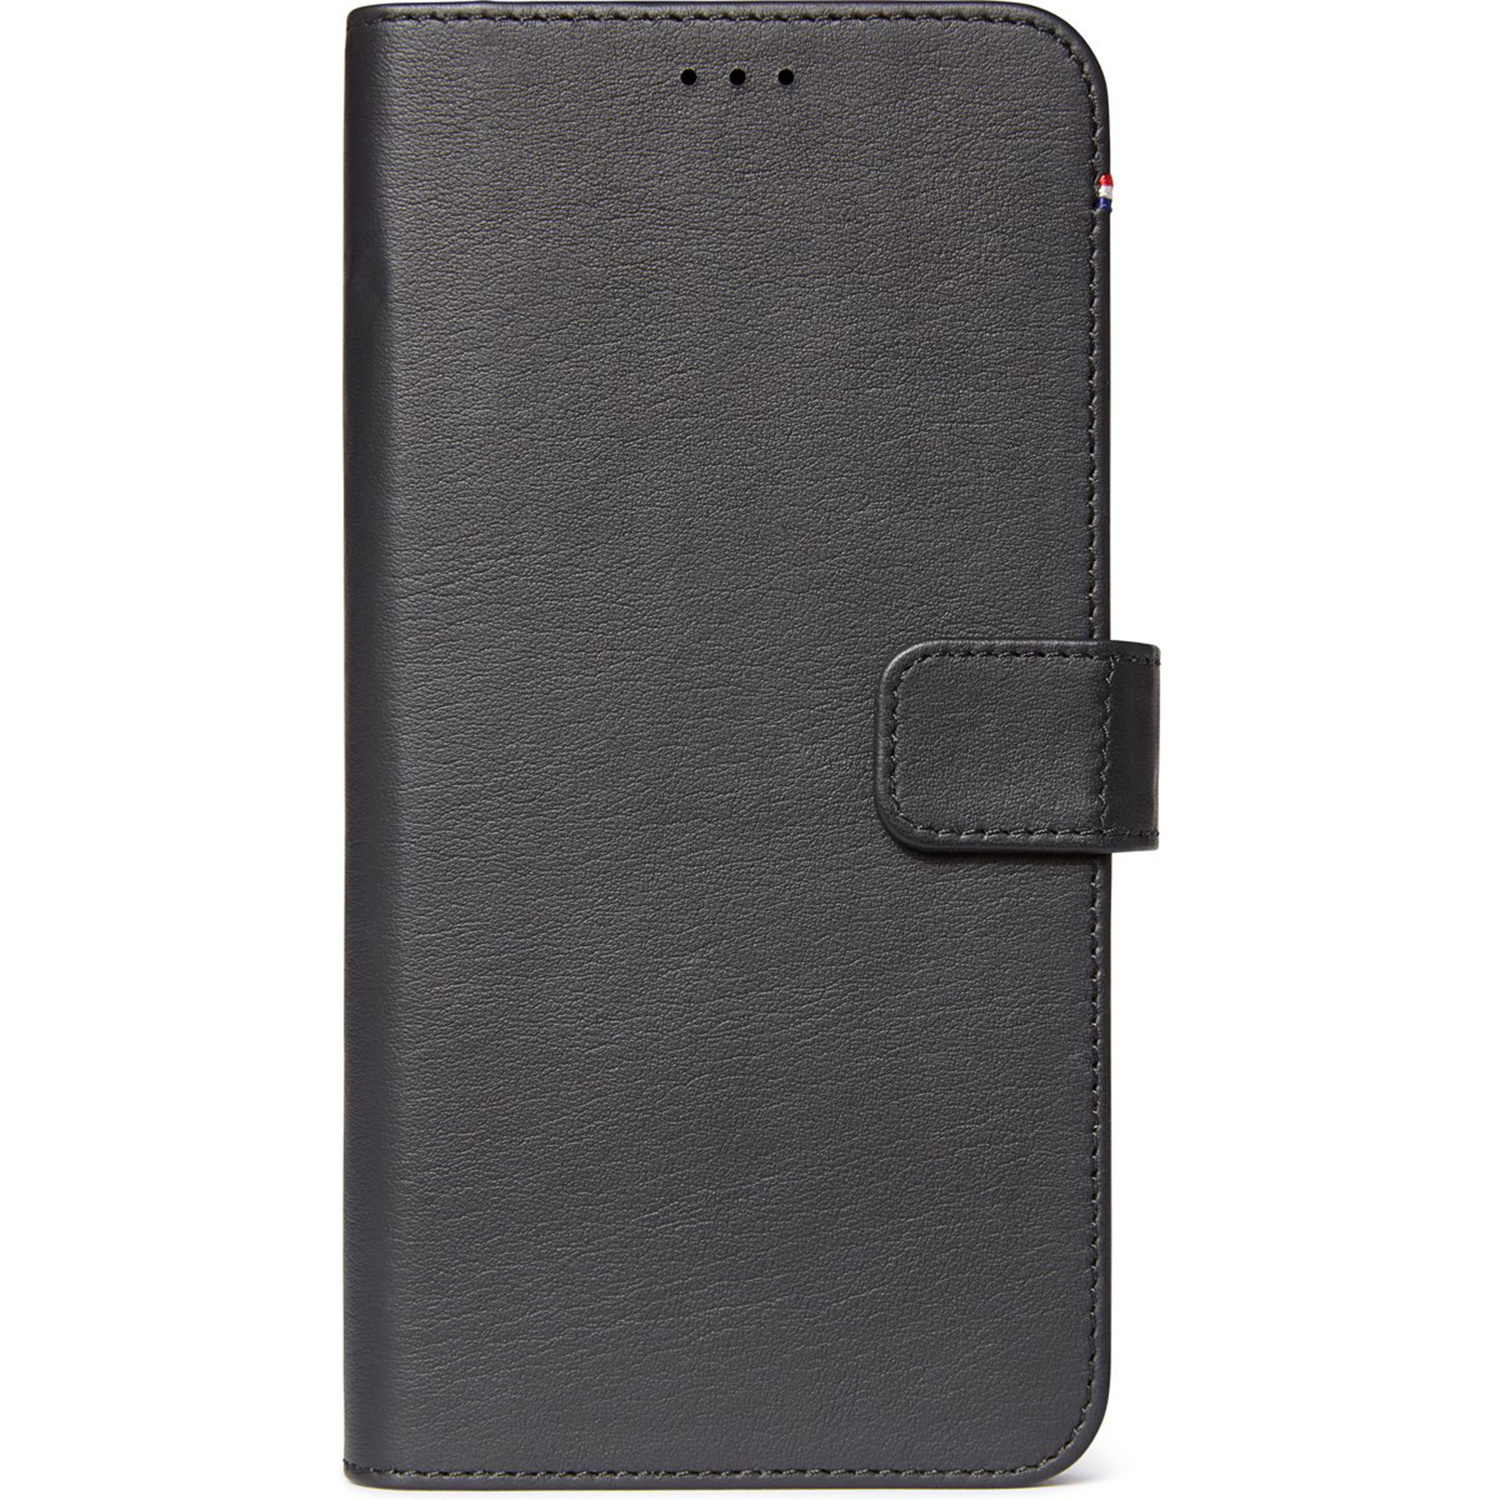 Decoded 2 in 1 Leather Booktype Schwarz iPhone 11 Pro Max